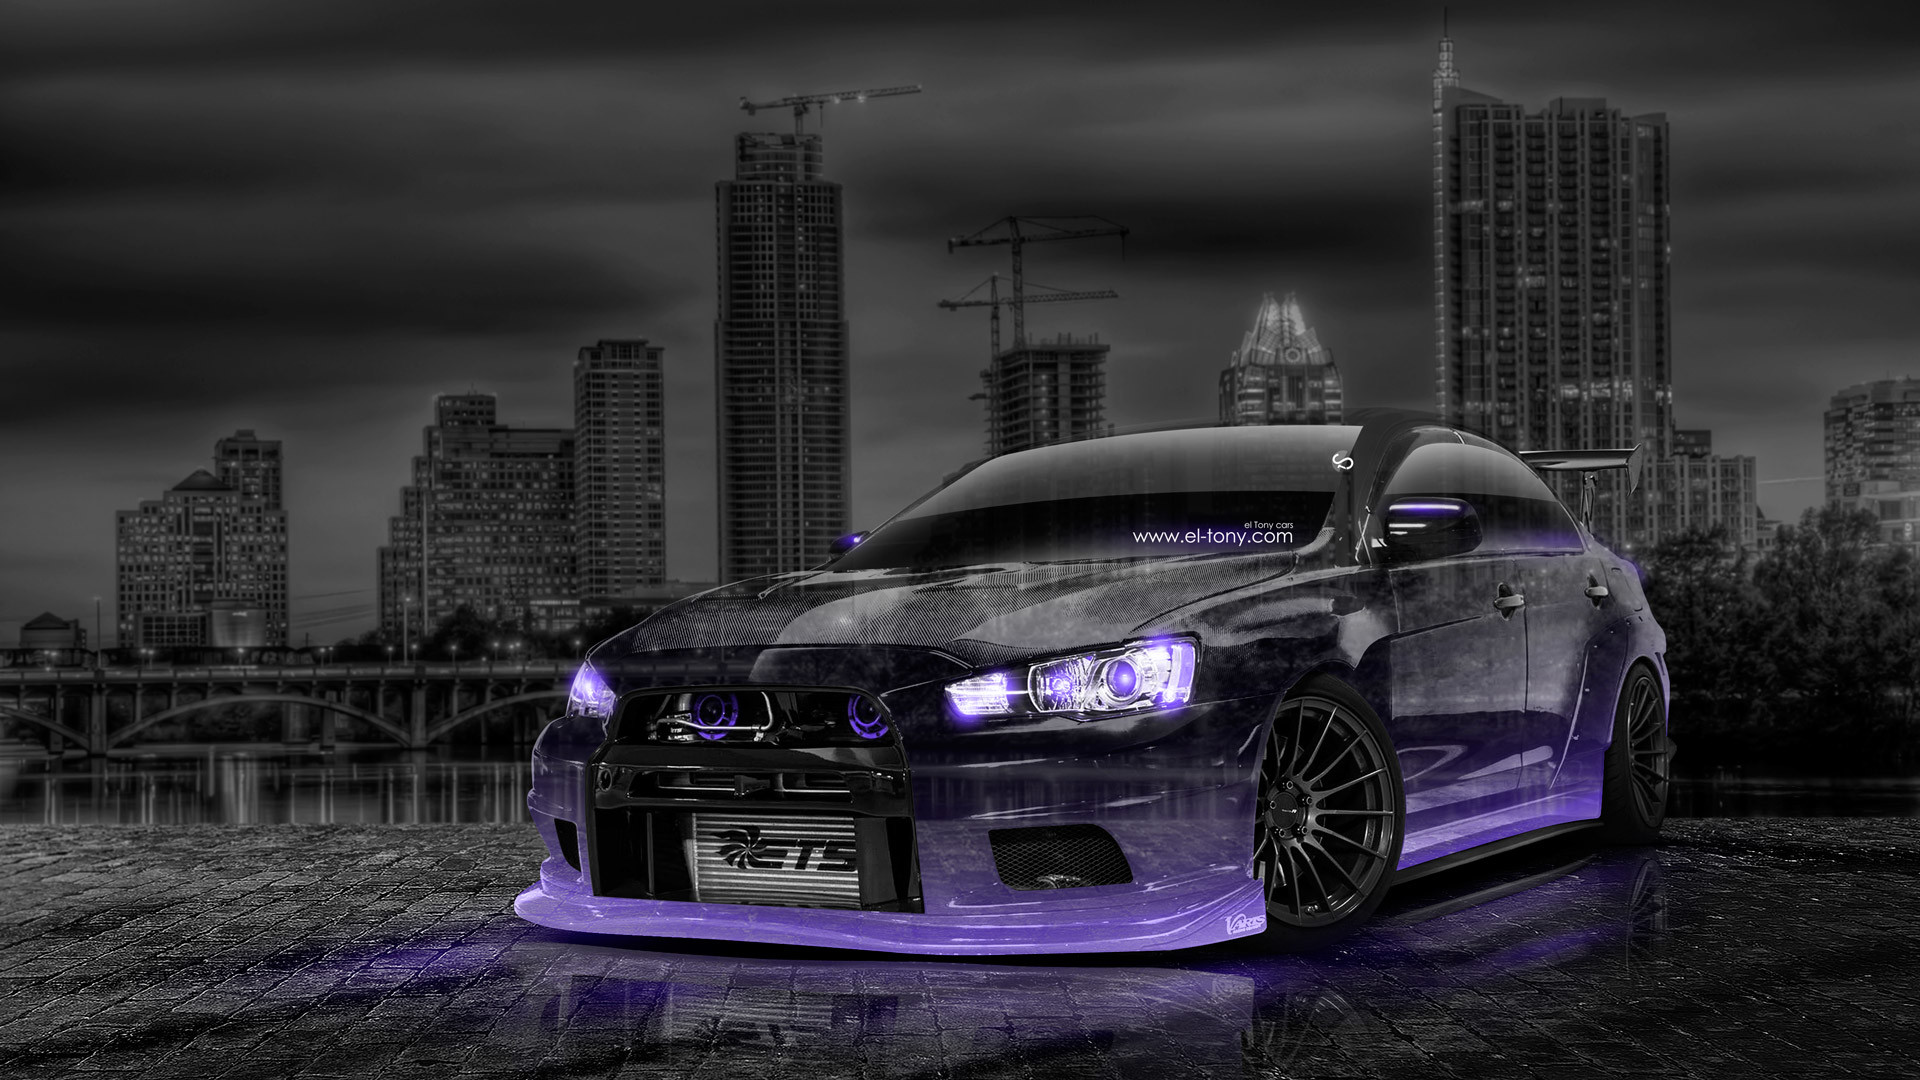 Perfect 1920x1200 Mitsubishi Lancer Evo X, Mitsubishi, Mitsubishi Lancer, Stance  Wallpapers HD / Desktop And Mobile Backgrounds